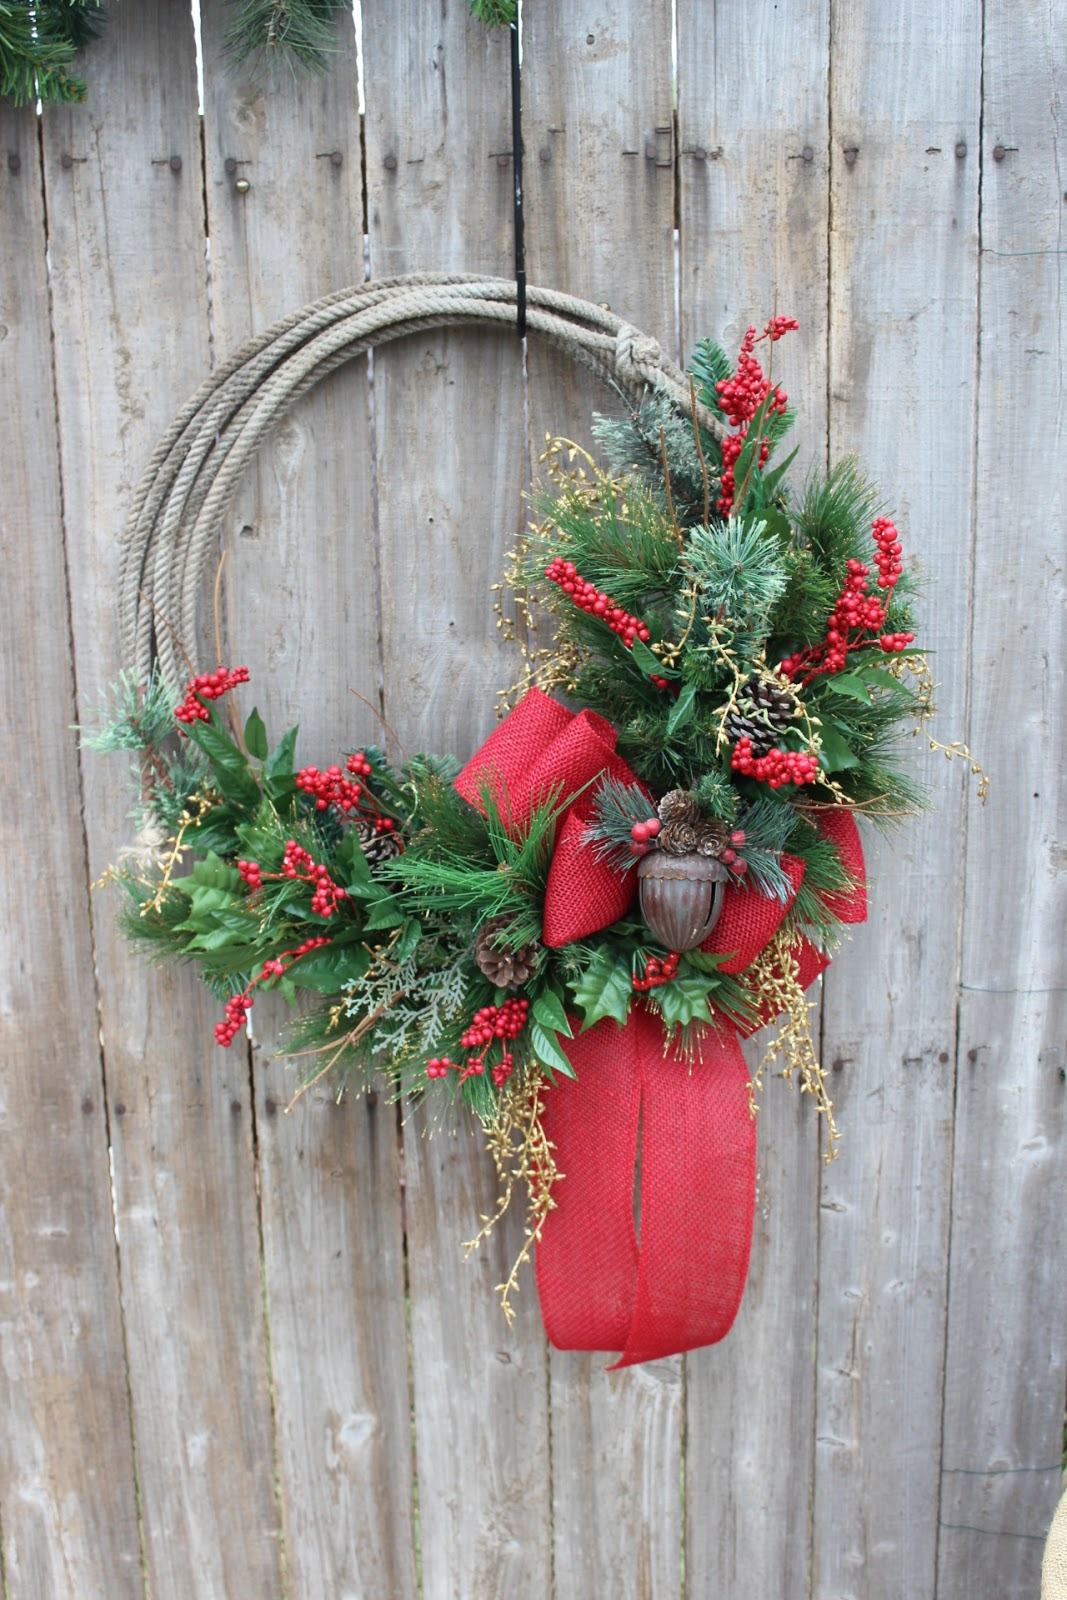 Gypsyfarmgirl New Western Rope Wreaths For Christmas